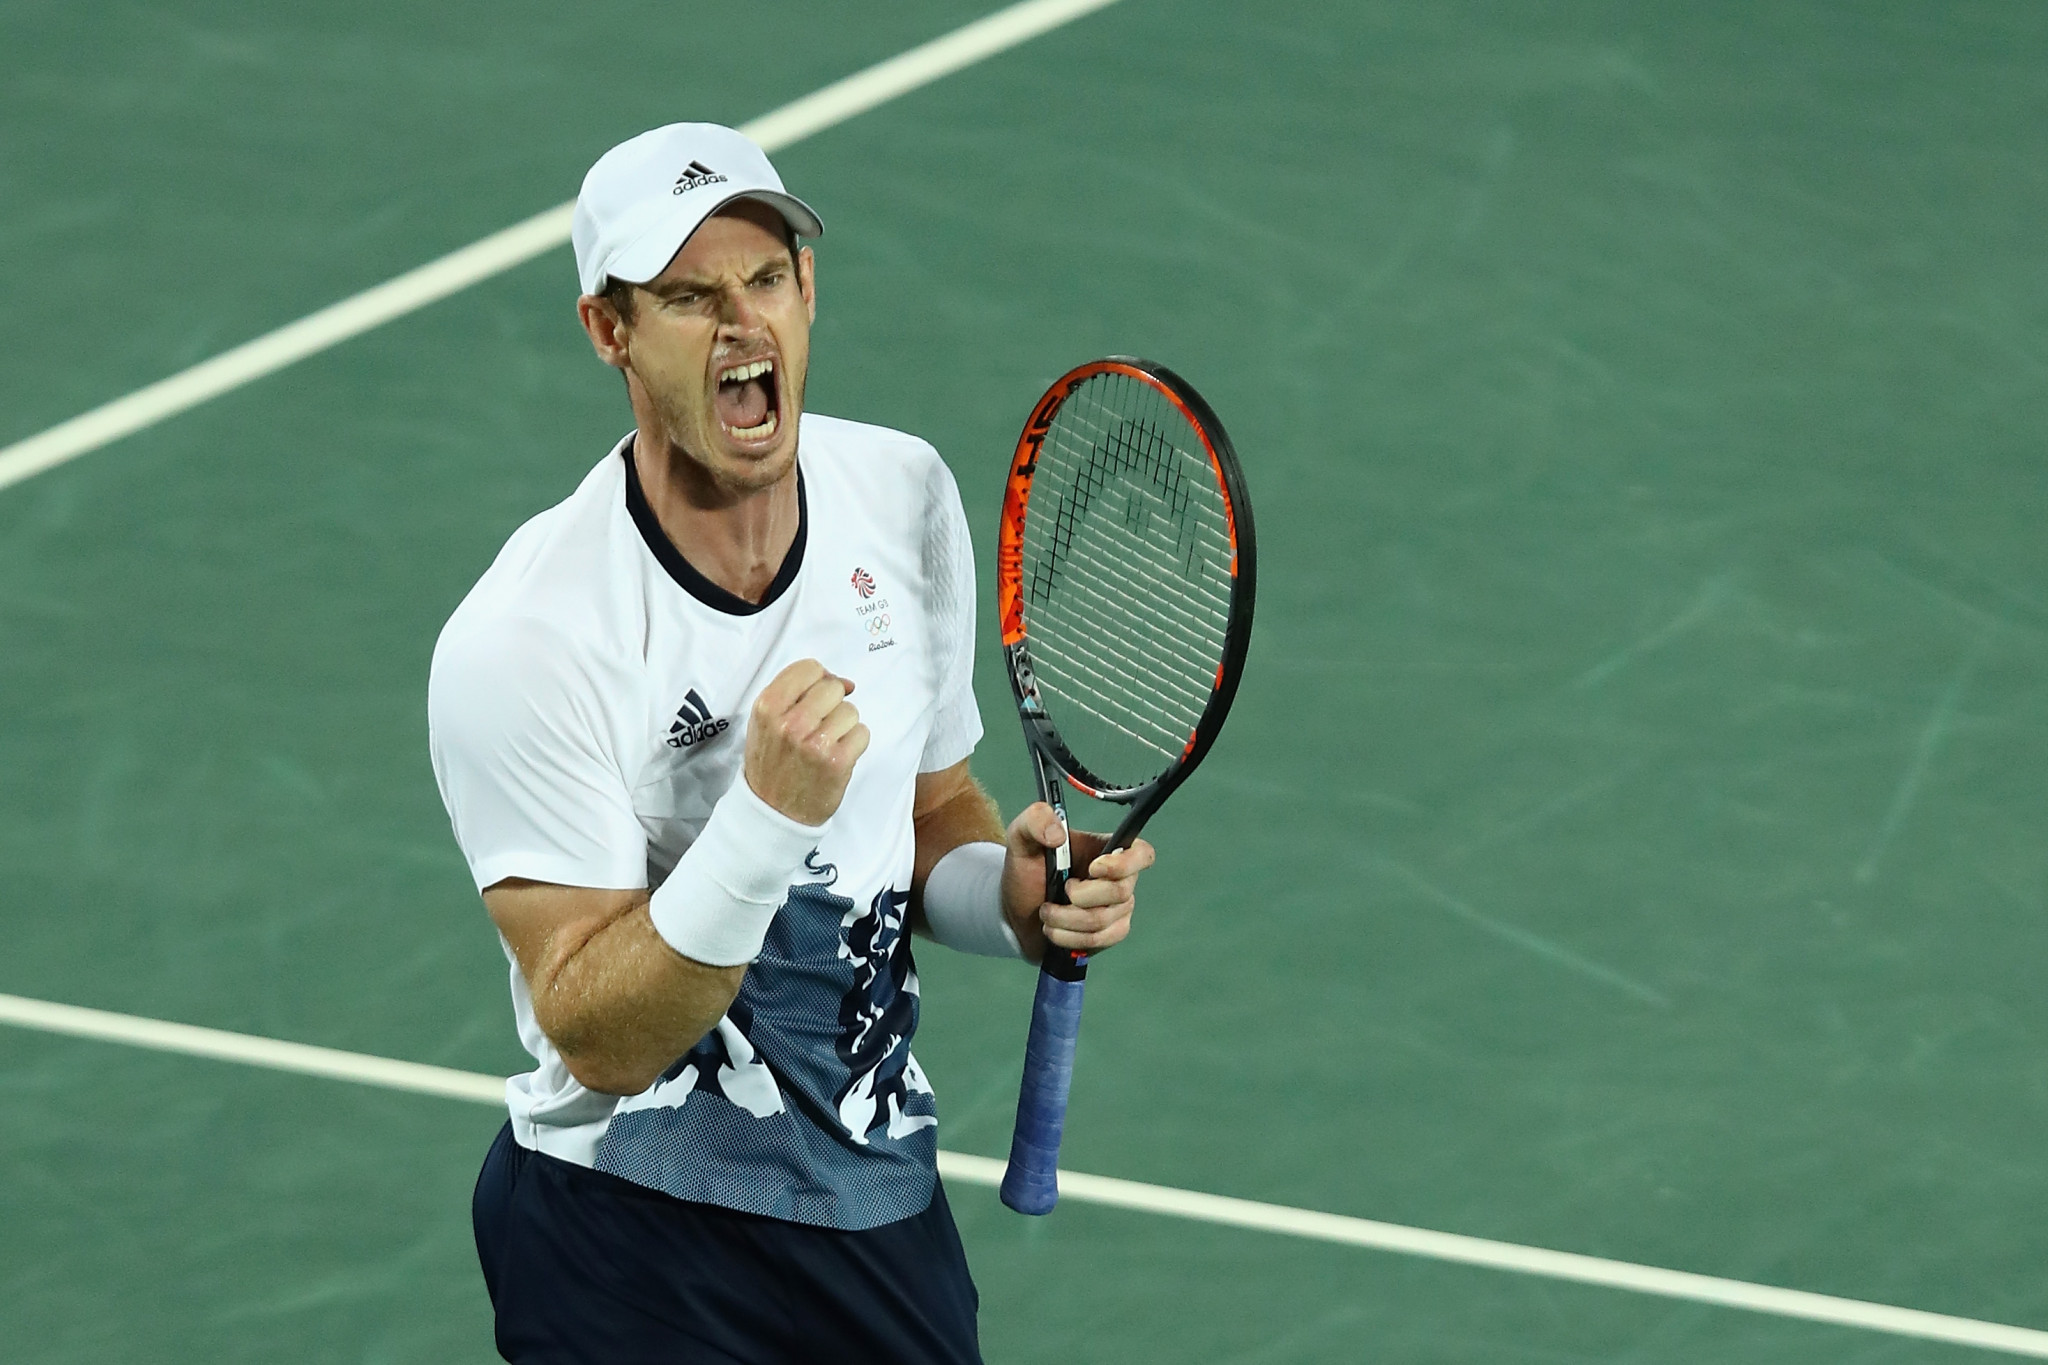 Two-time Olympic champion Murray hopeful of competing at Tokyo 2020